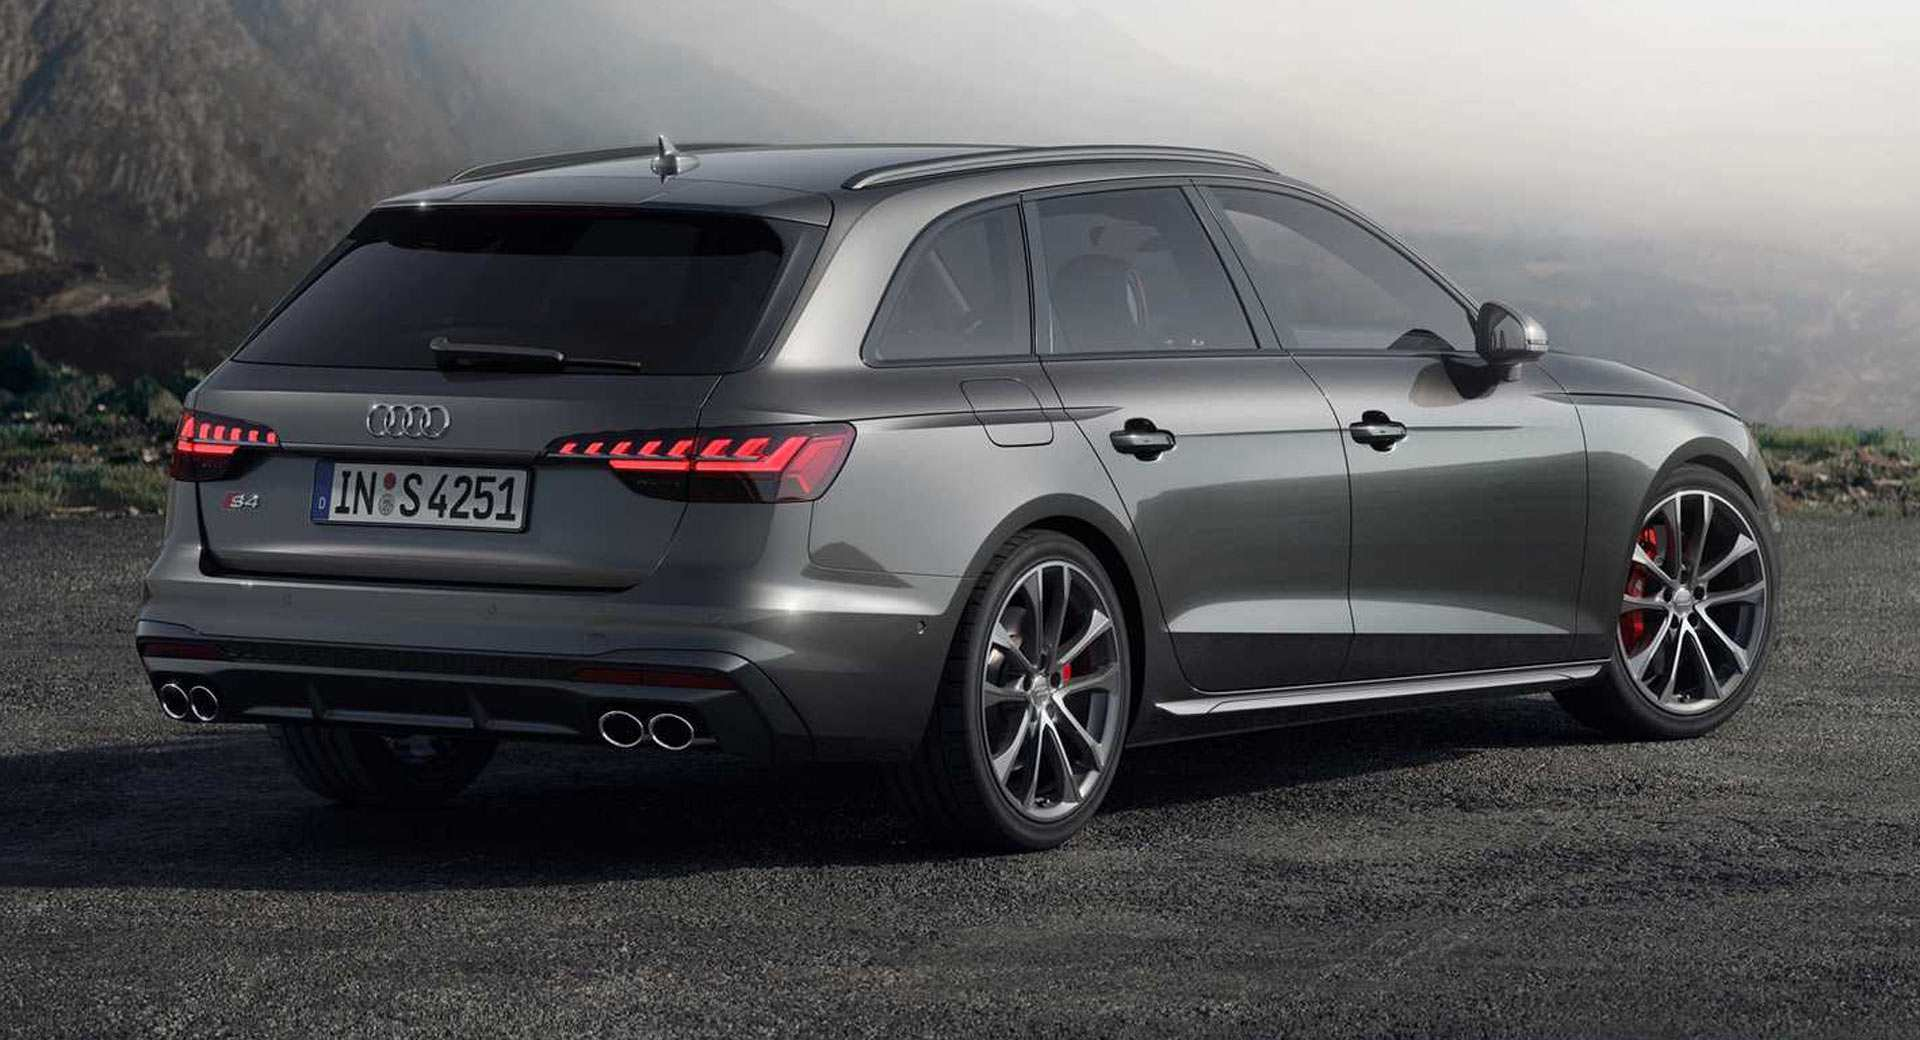 56 The Best 2020 Audi S4 Overview